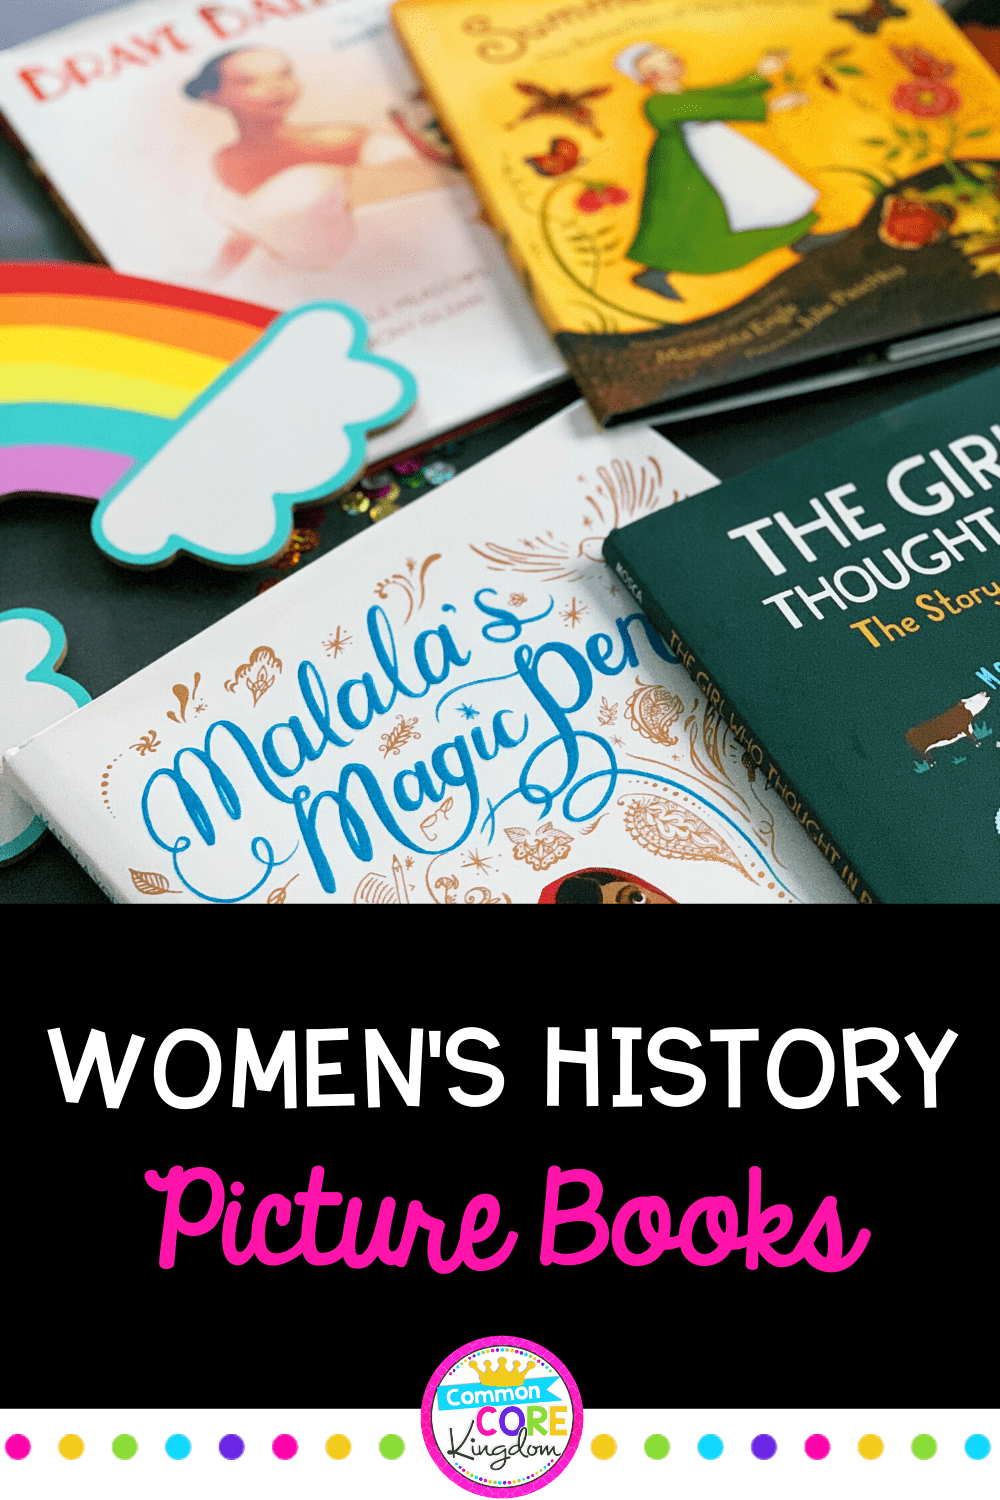 Women's History Picture Books Blog Post Cover